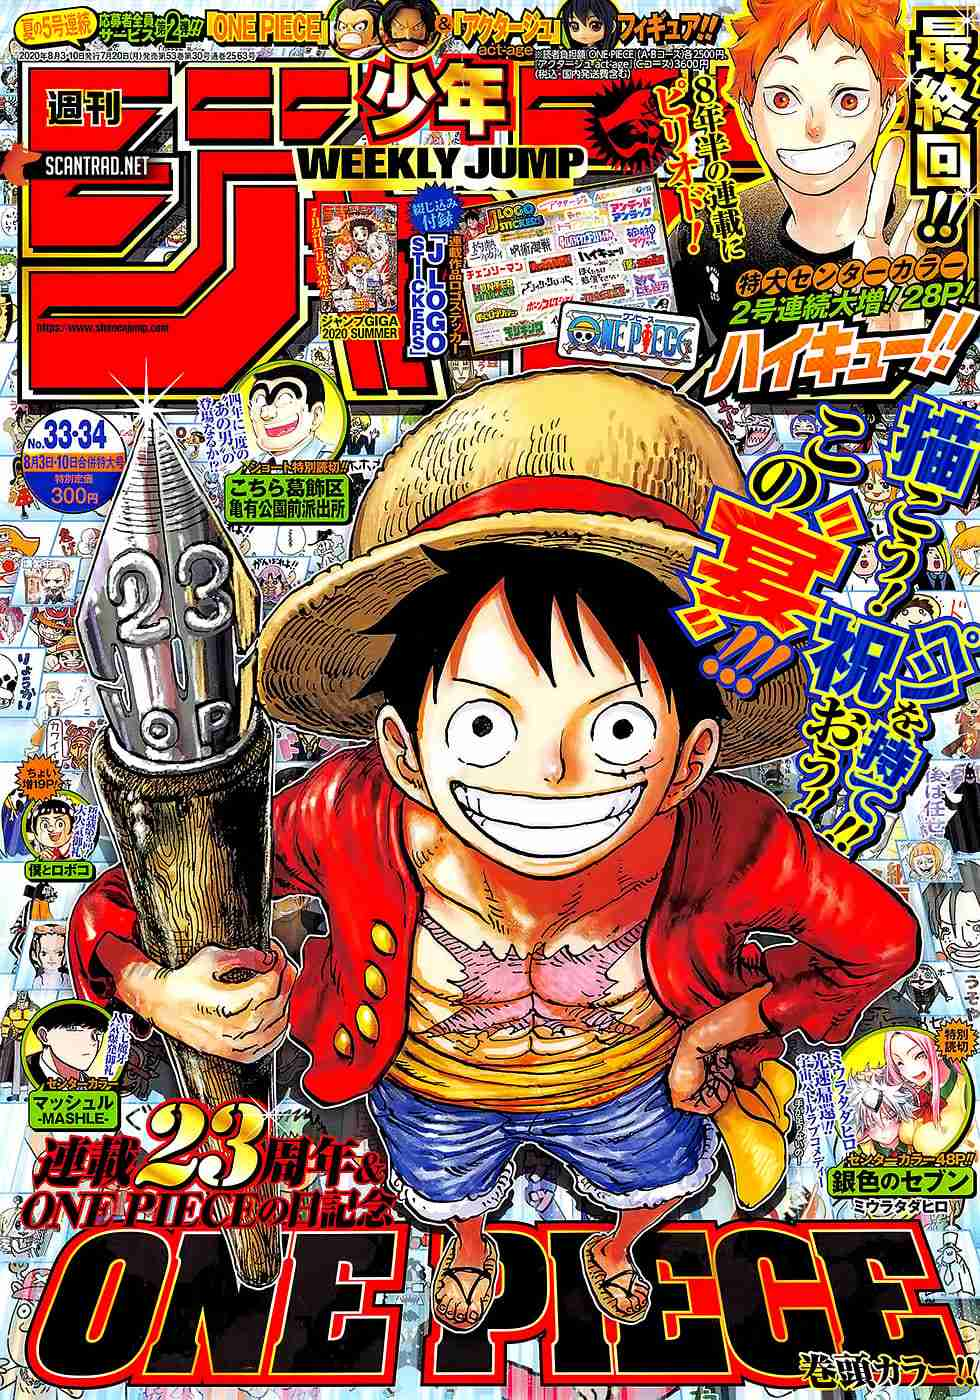 One Piece Ch. 985 The New Onigashima Plan